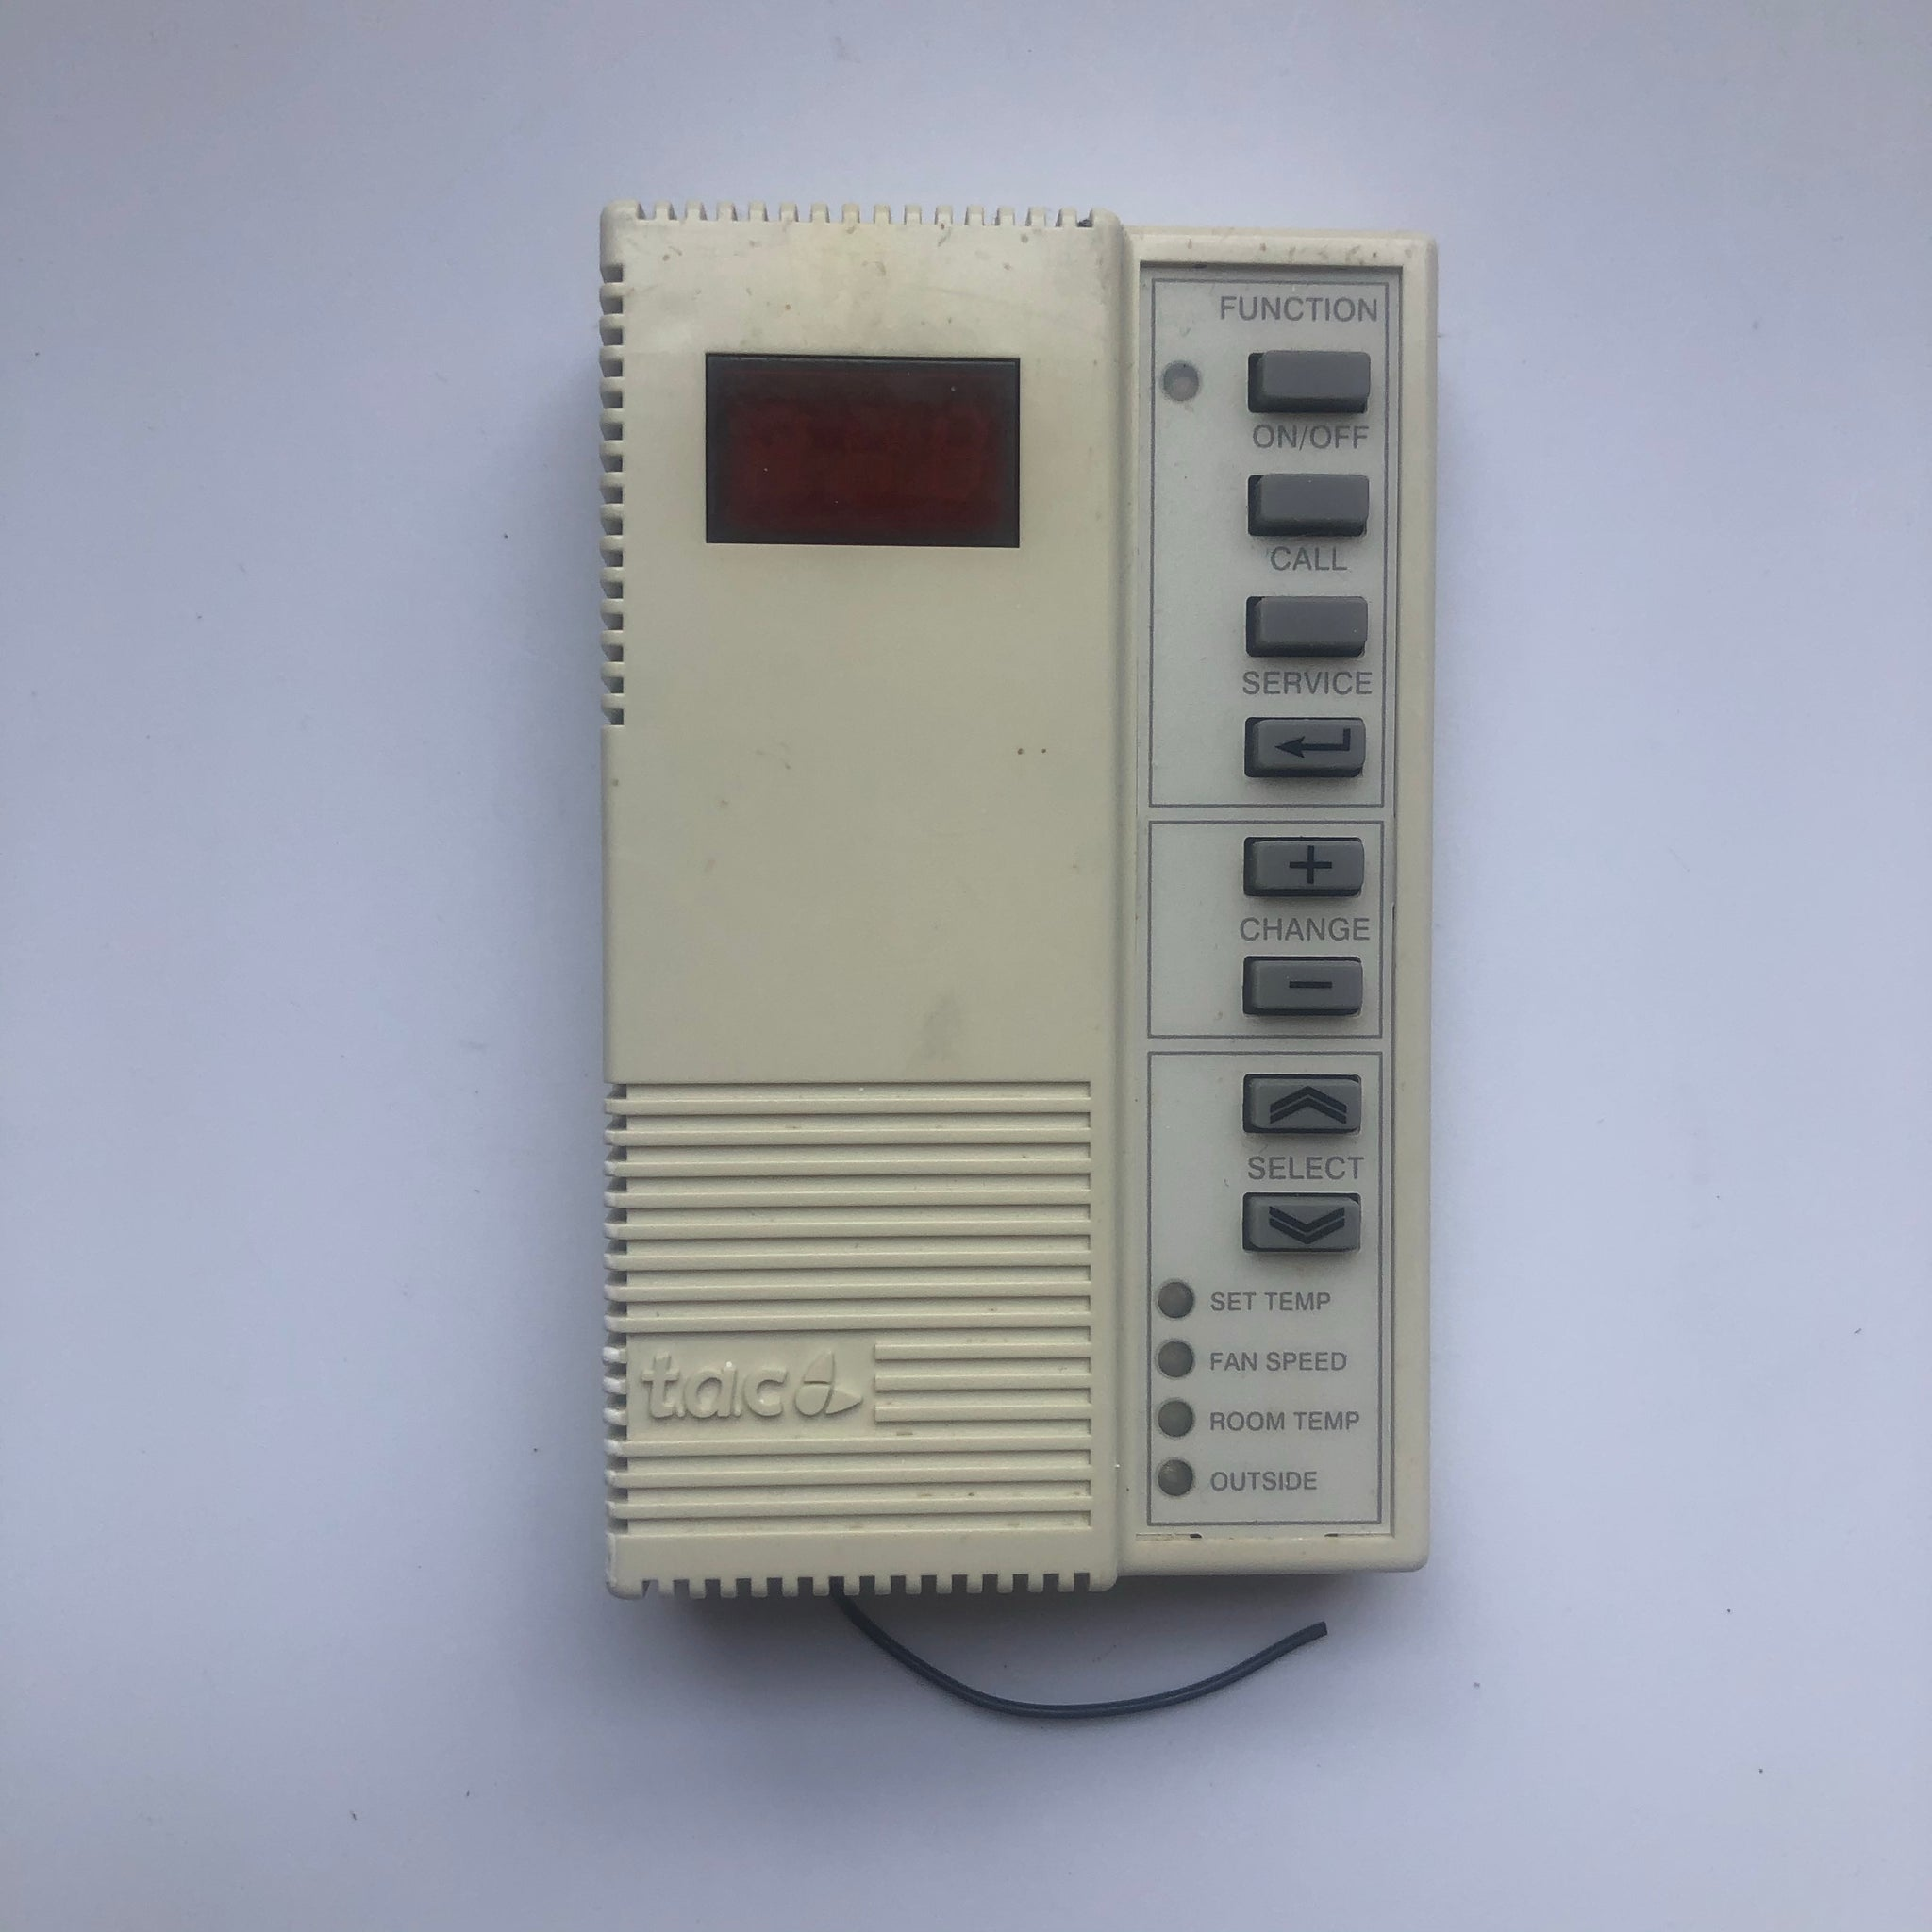 CSI Control Systems 330630-01 I/STAT